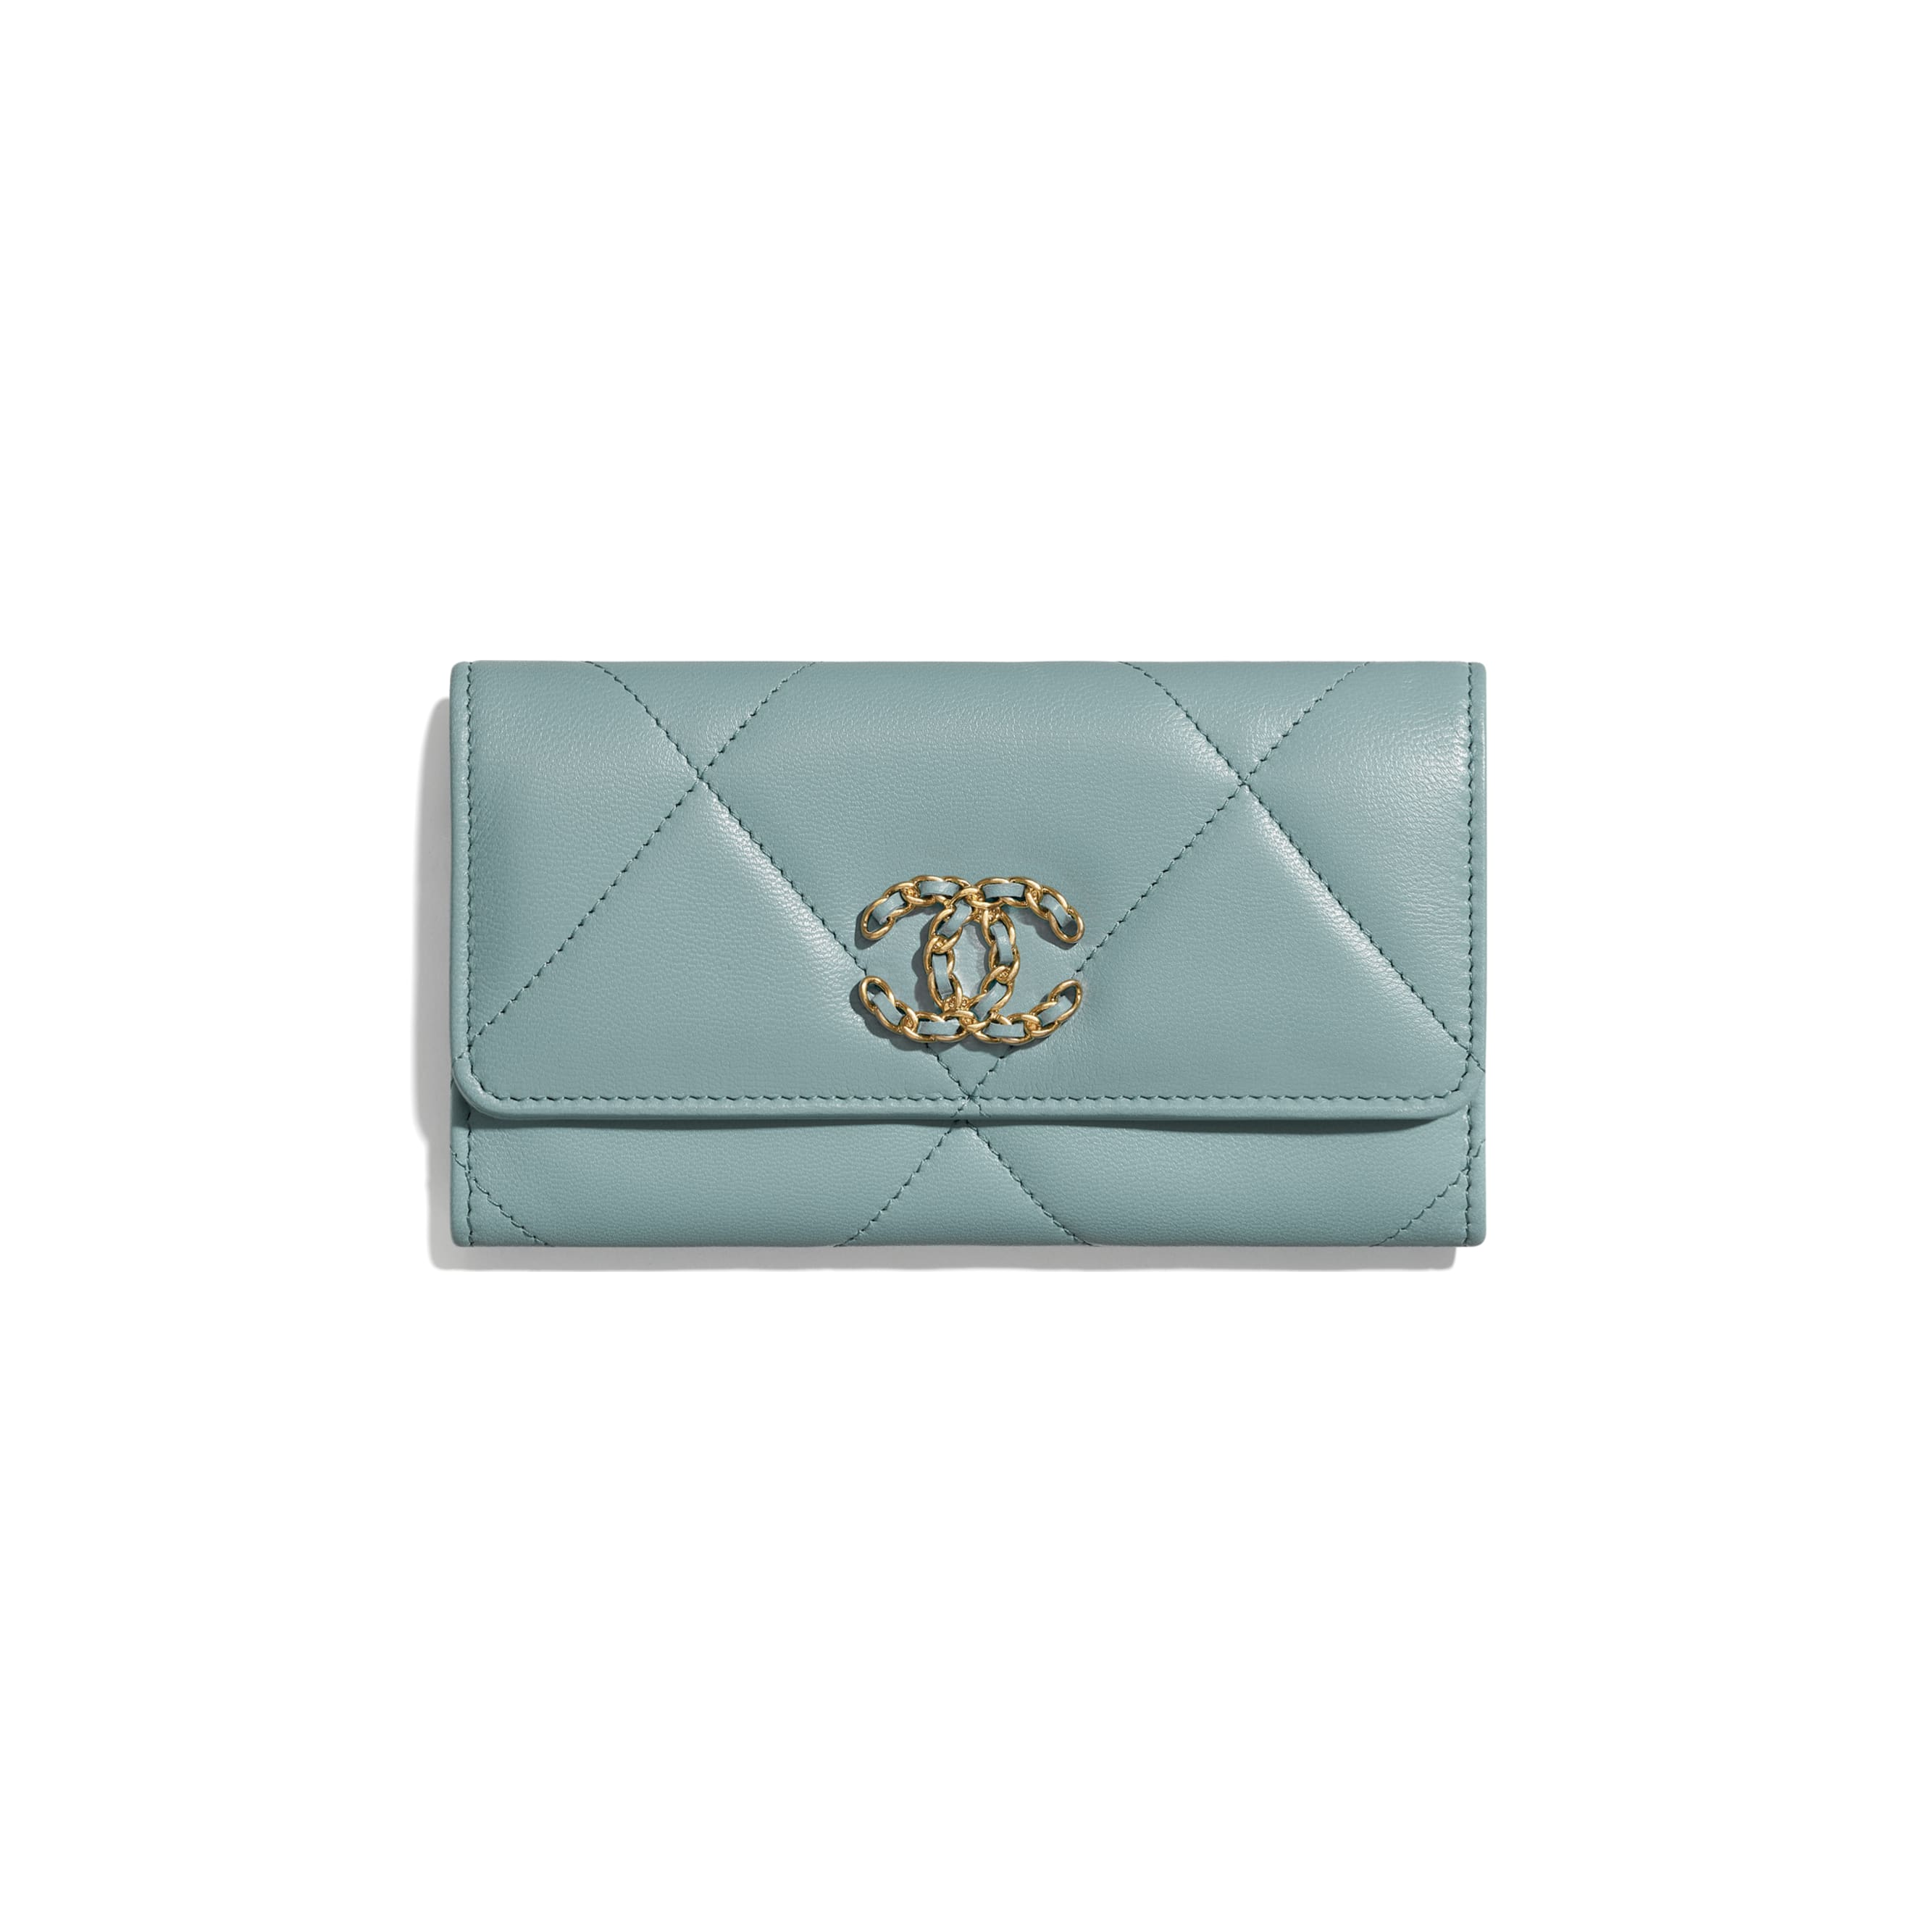 CHANEL 19 Flap Wallet - Blue - Shiny Goatskin, Gold-Tone, Silver-Tone & Ruthenium-Finish Metal - Default view - see standard sized version